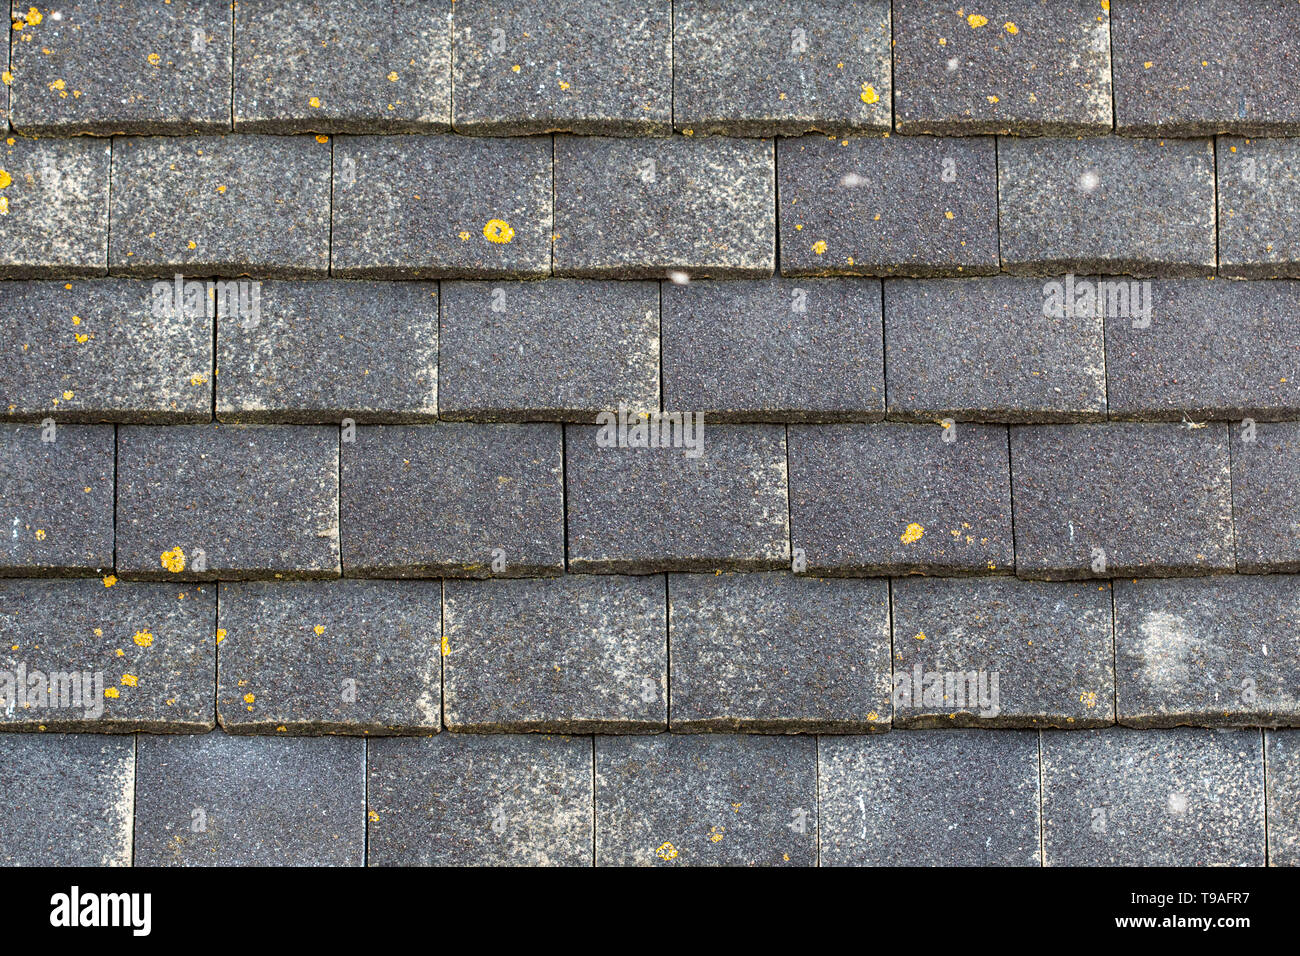 close up of external wall tiles on a 1960s built house in the UK - Stock Image